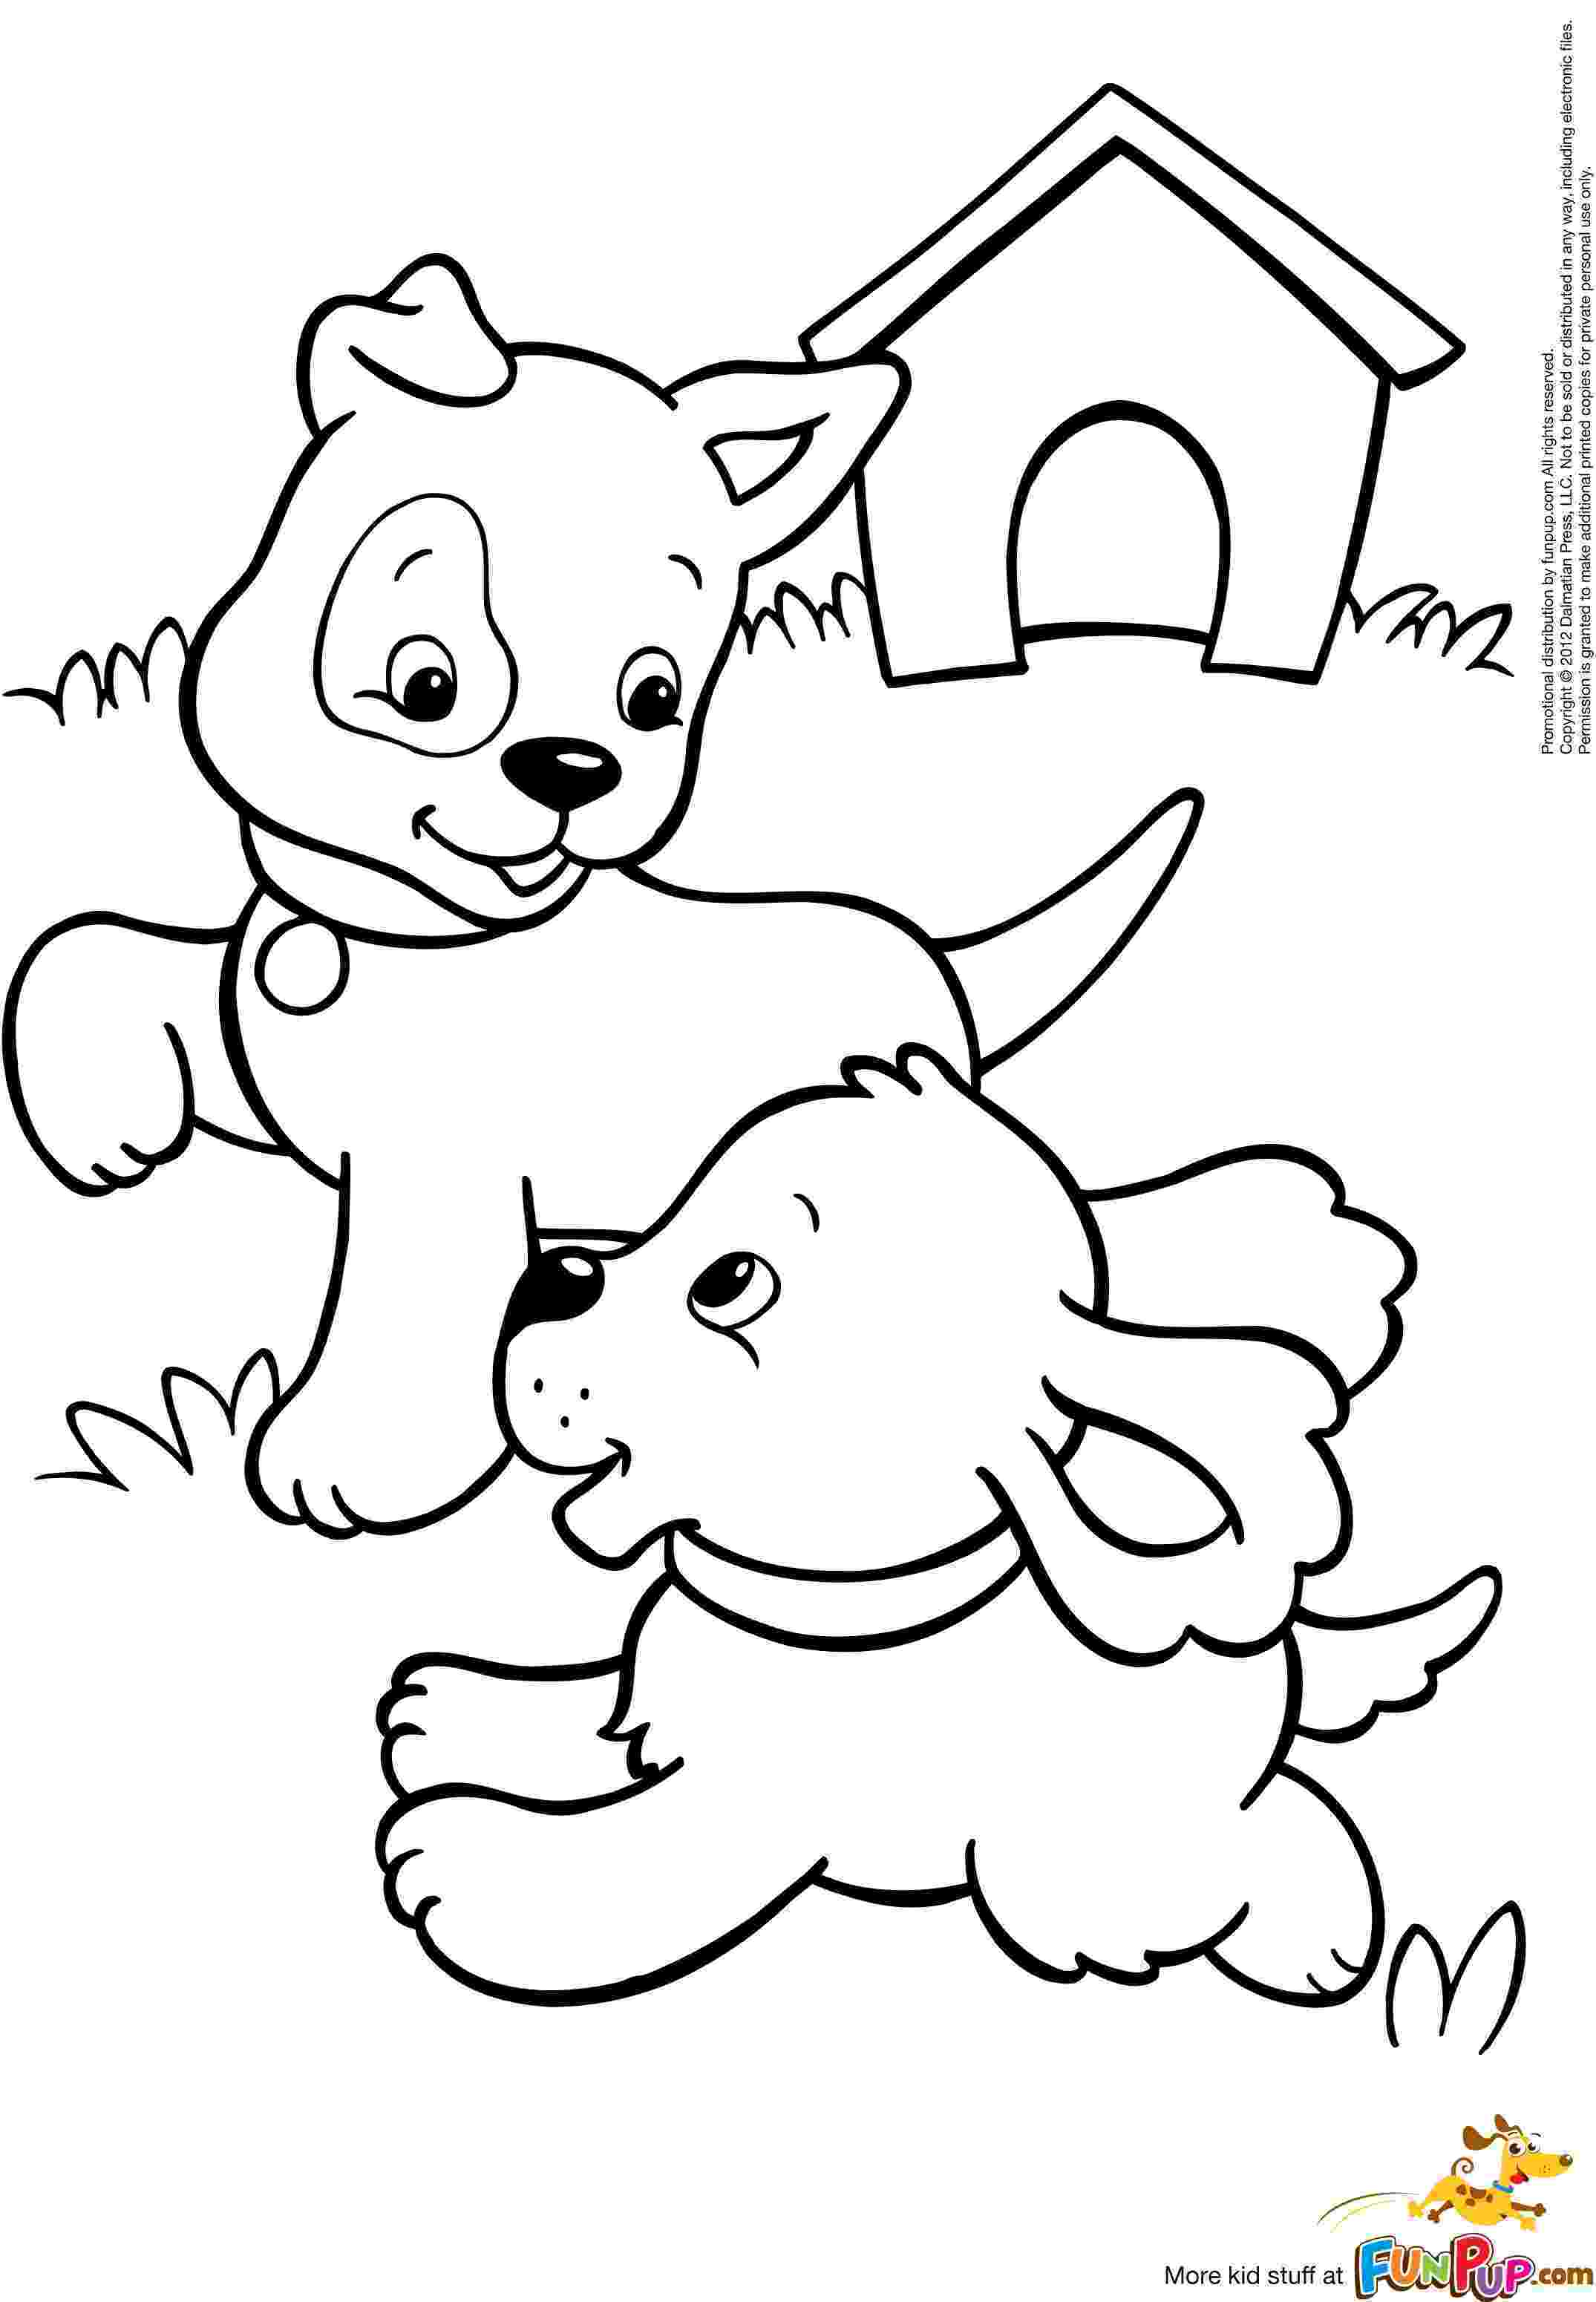 colouring pages of a dog faithful animal dog 20 dog coloring pages free printables of dog a colouring pages